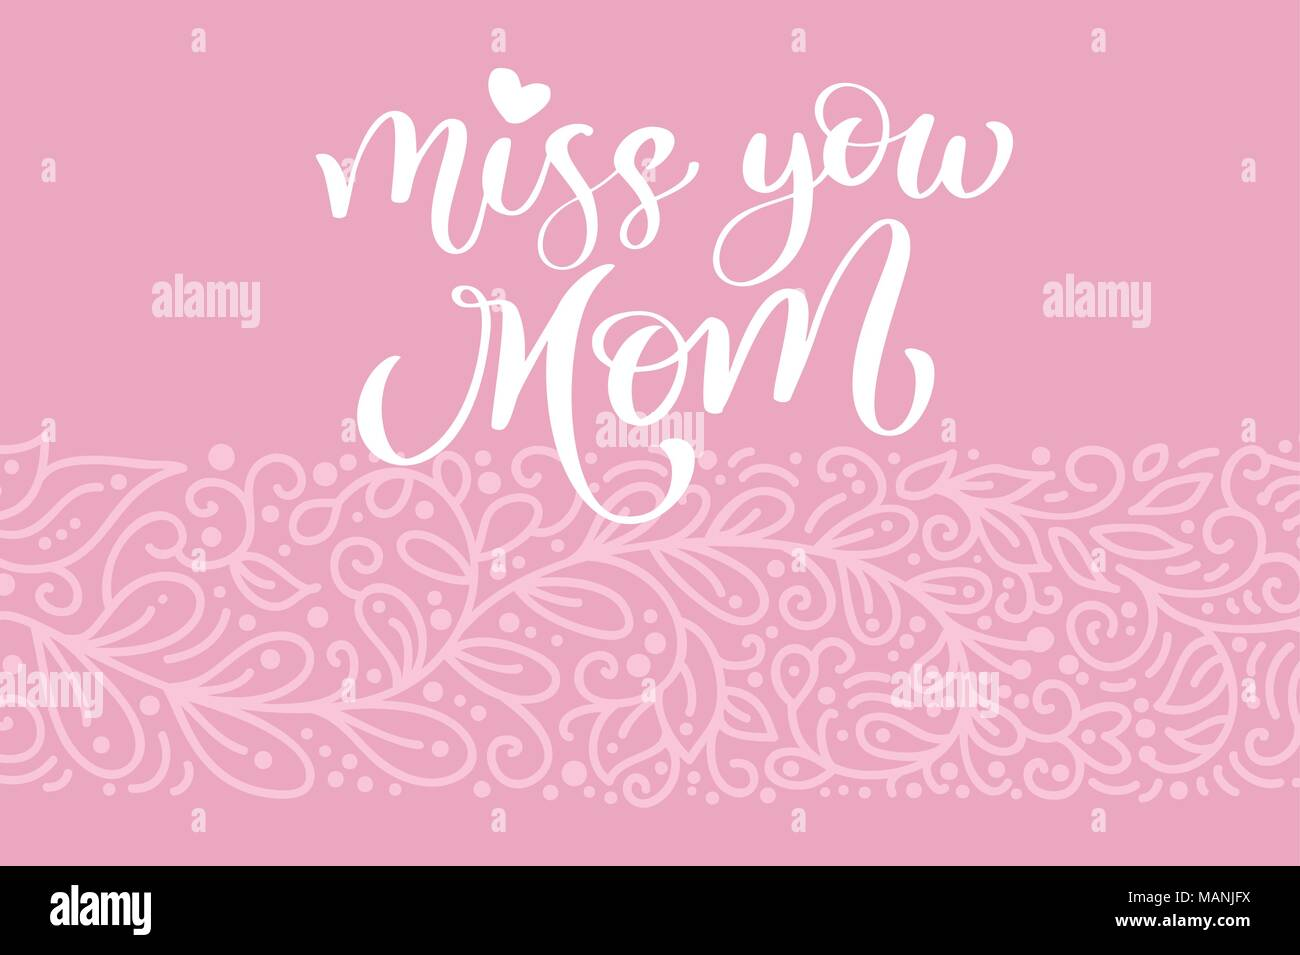 Miss You Mom Greeting Card Vector Calligraphic Inscription Phrase